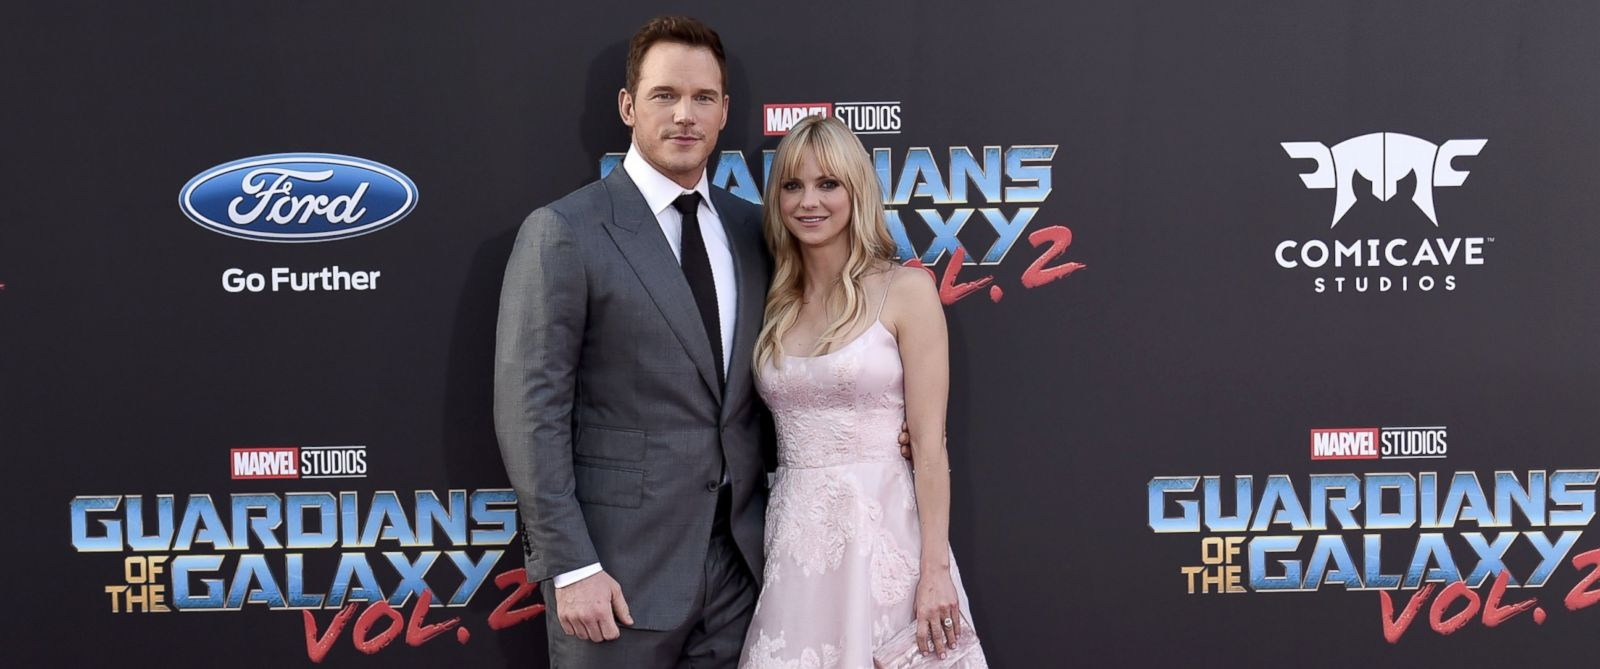 "PHOTO: Chris Pratt and Anna Faris arrive at the ""Guardians of the Galaxy Vol. 2"" film premiere, April 19, 2017, in Los Angeles."